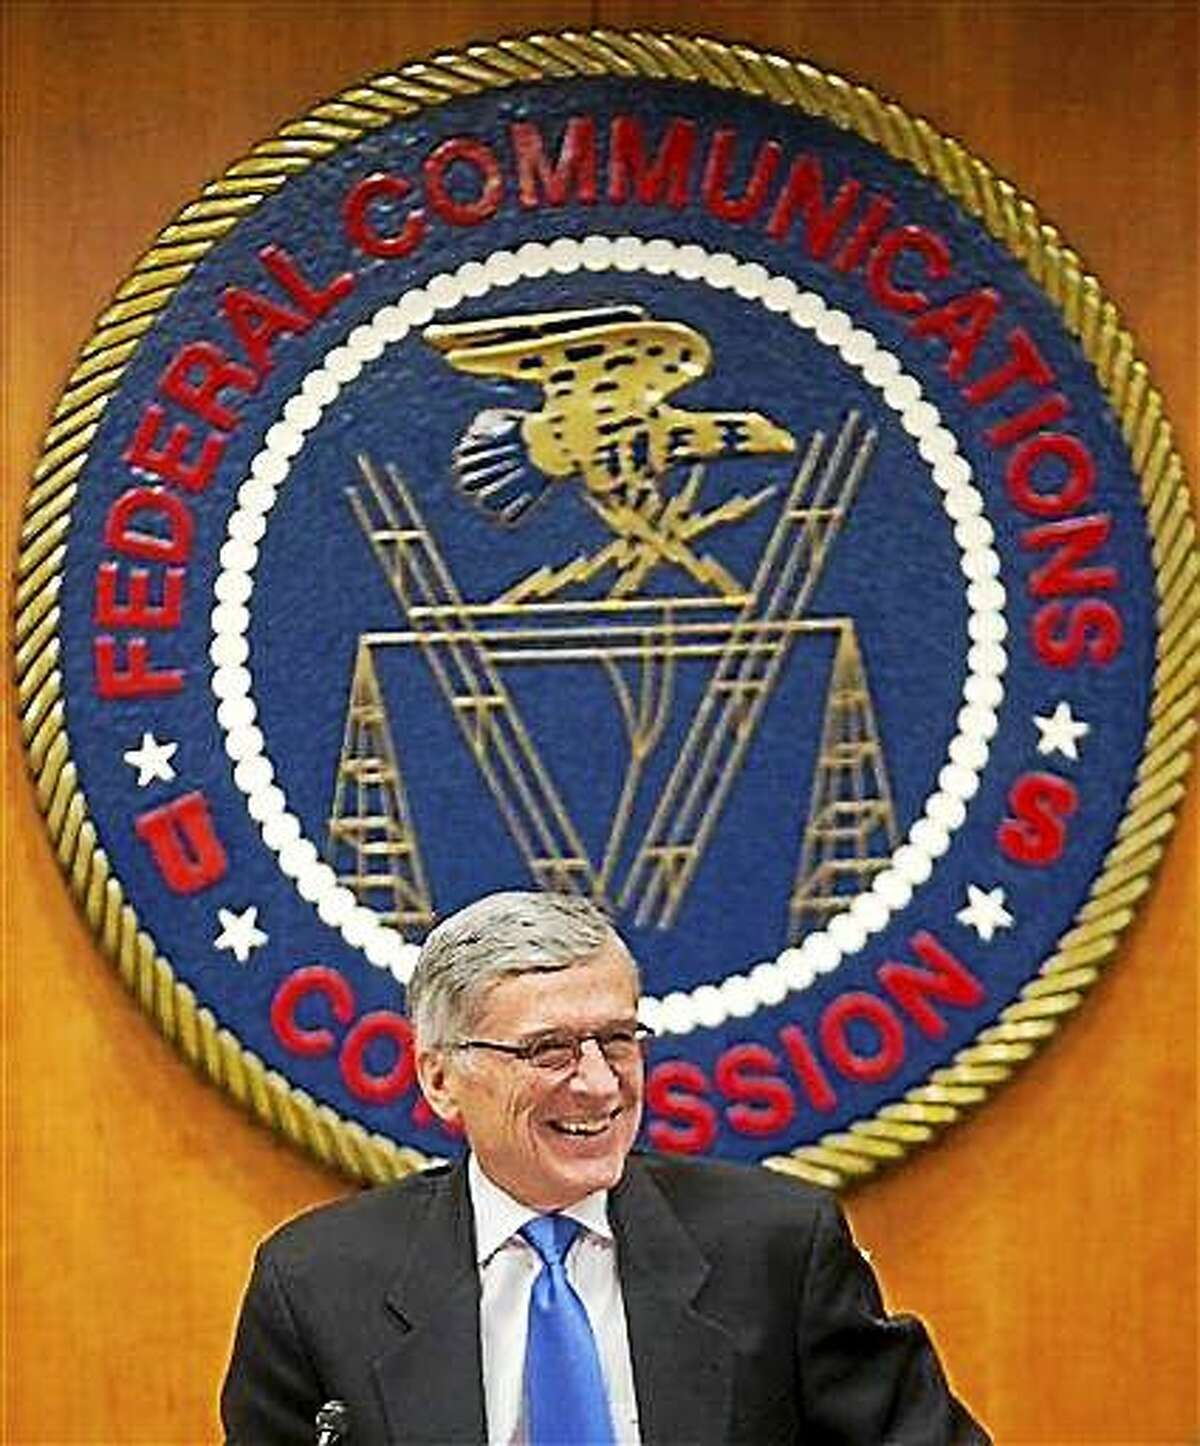 """Federal Communication Commission (FCC Chairman Tom Wheeler takes his seat before the start of an open hearing in Washington, Thursday, Feb. 26, 2015. Internet service providers like Comcast, Verizon, AT&T, Sprint and T-Mobile would have to act in the """"public interest"""" when providing a mobile connection to your home or phone, under new rules being considered by the Federal Communications Commission. The rules would put the Internet in the same regulatory camp as the telephone, banning providers from """"unjust or unreasonable"""" business practices. (AP Photo/Pablo Martinez Monsivais)"""